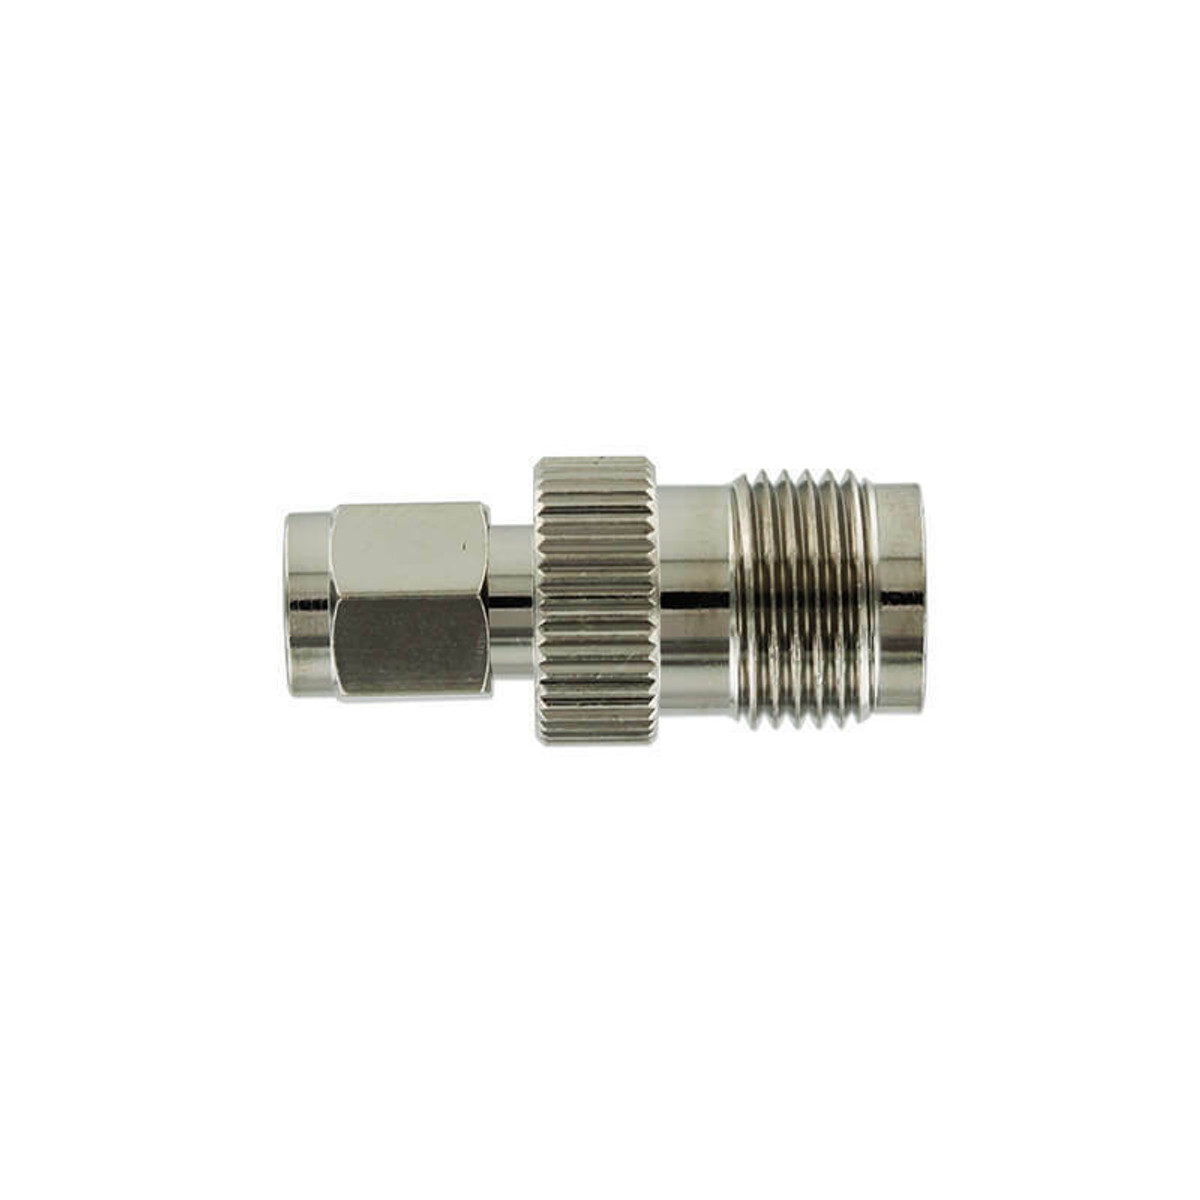 Wilson Electronics weBoost Wilson 971153 SMA-Male to TNC-Female Connector